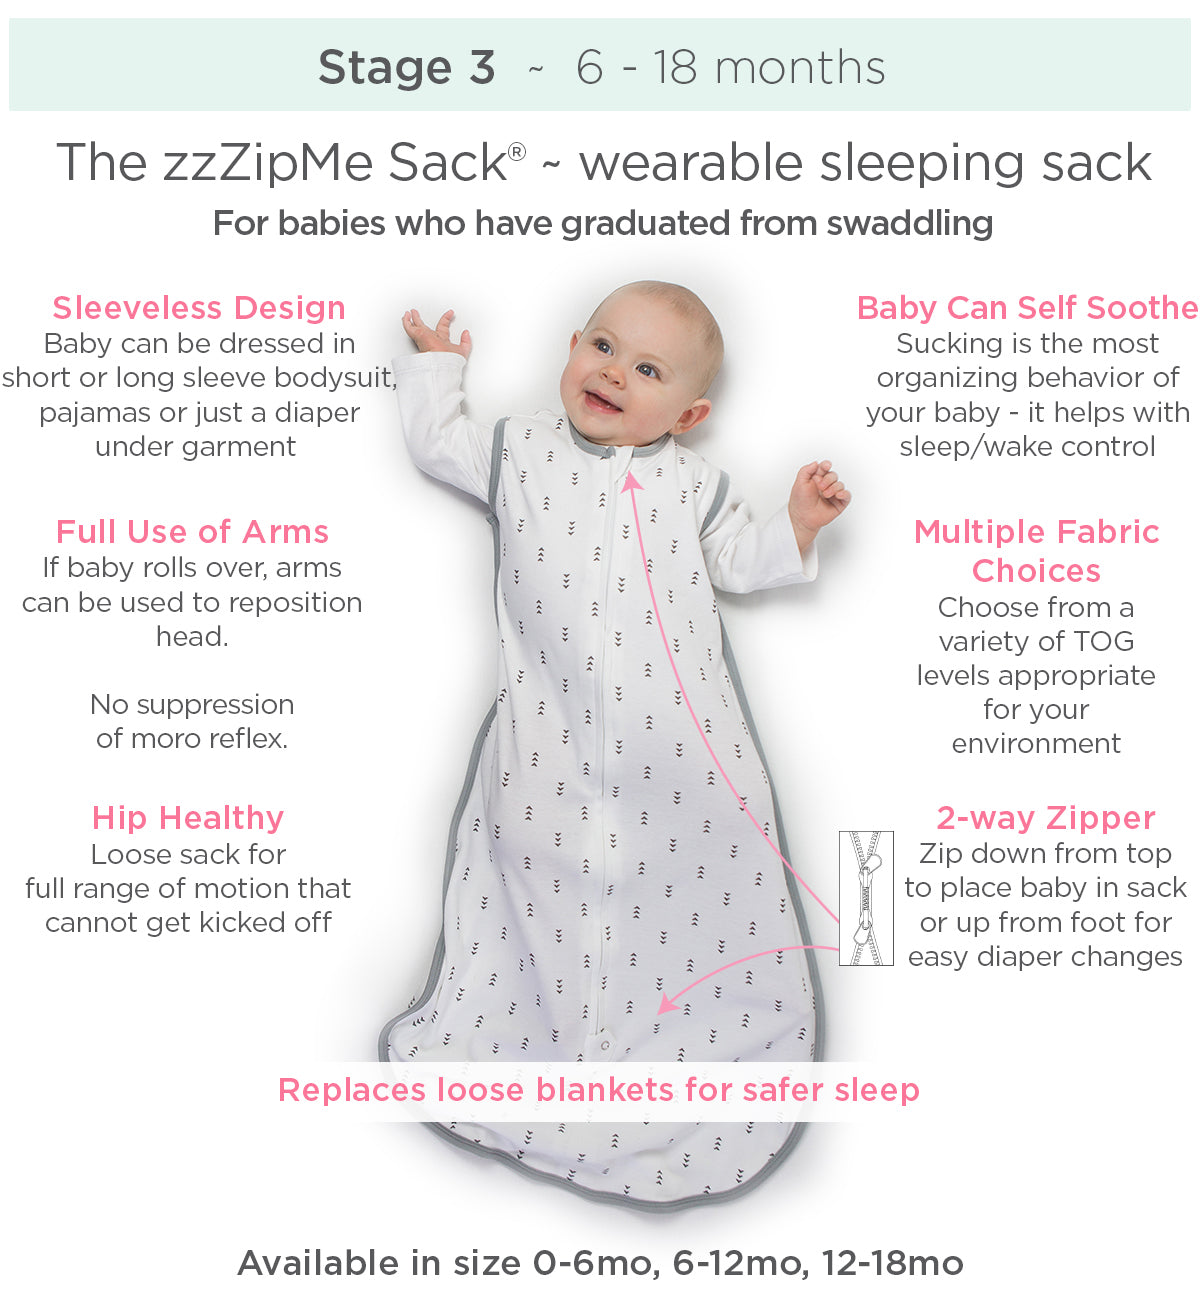 Stage 3 Safe Sleepwear zzZipMe Sack